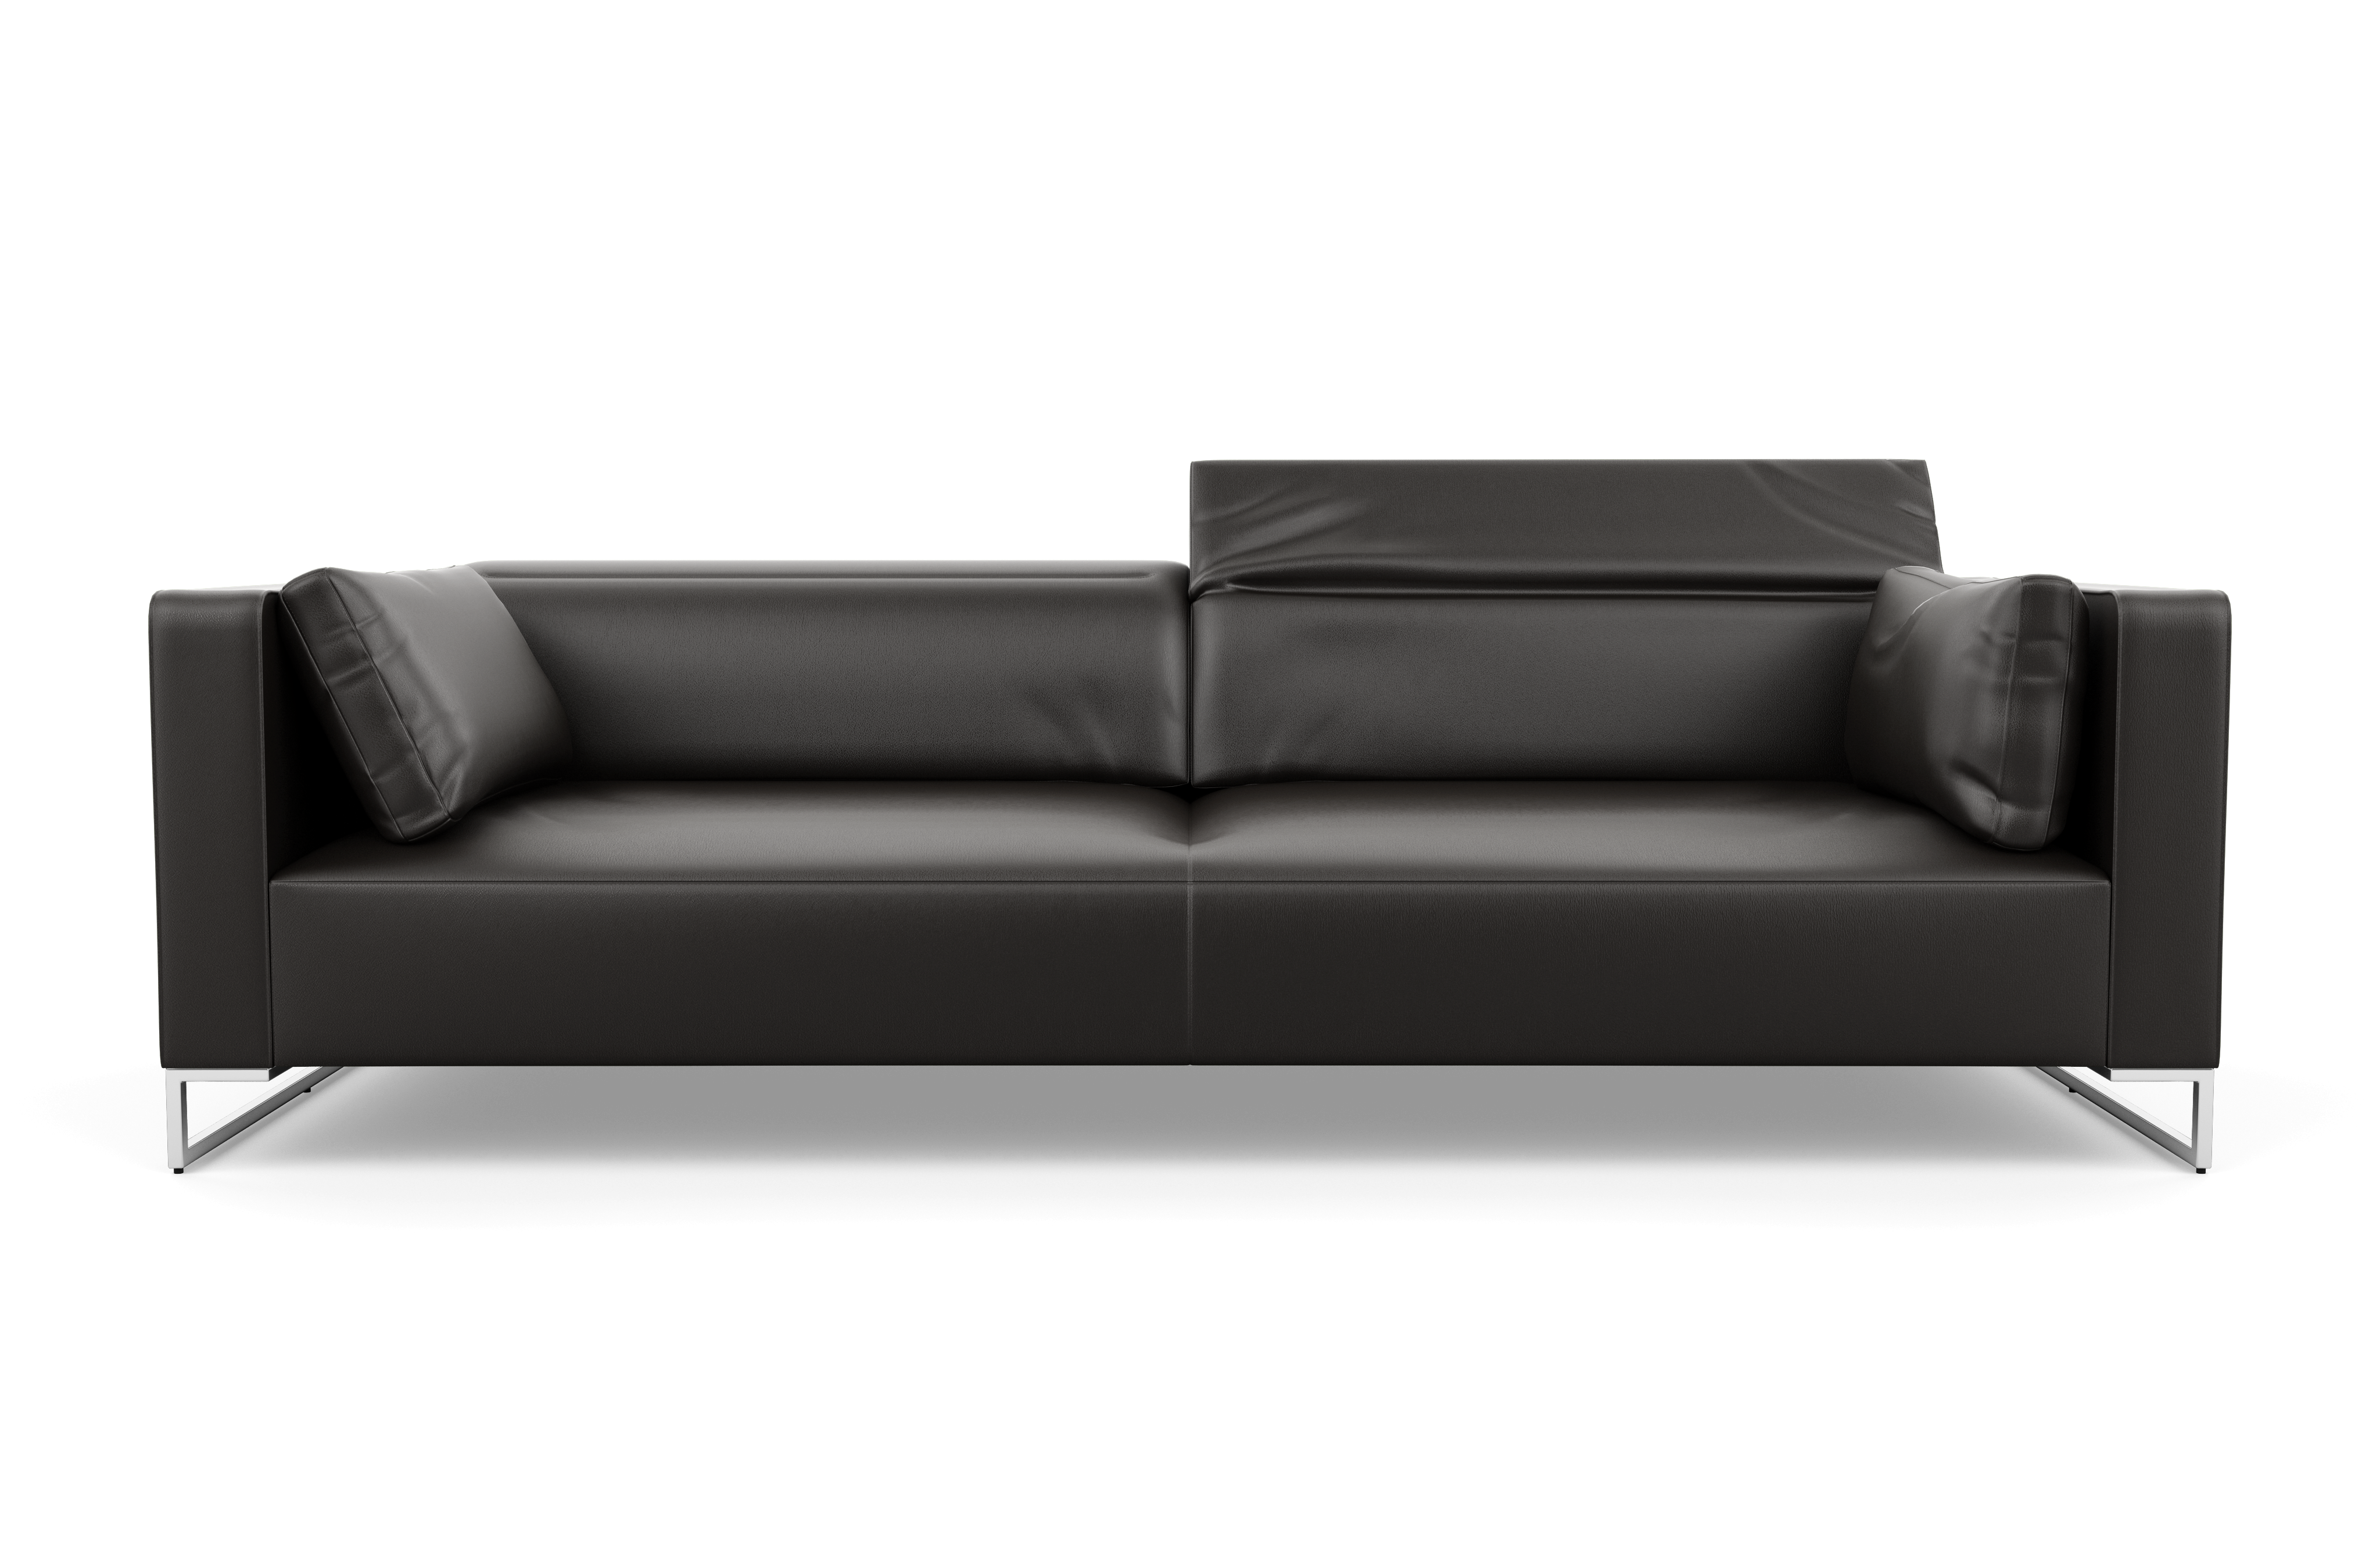 sofa urbani ligne roset hereo sofa. Black Bedroom Furniture Sets. Home Design Ideas